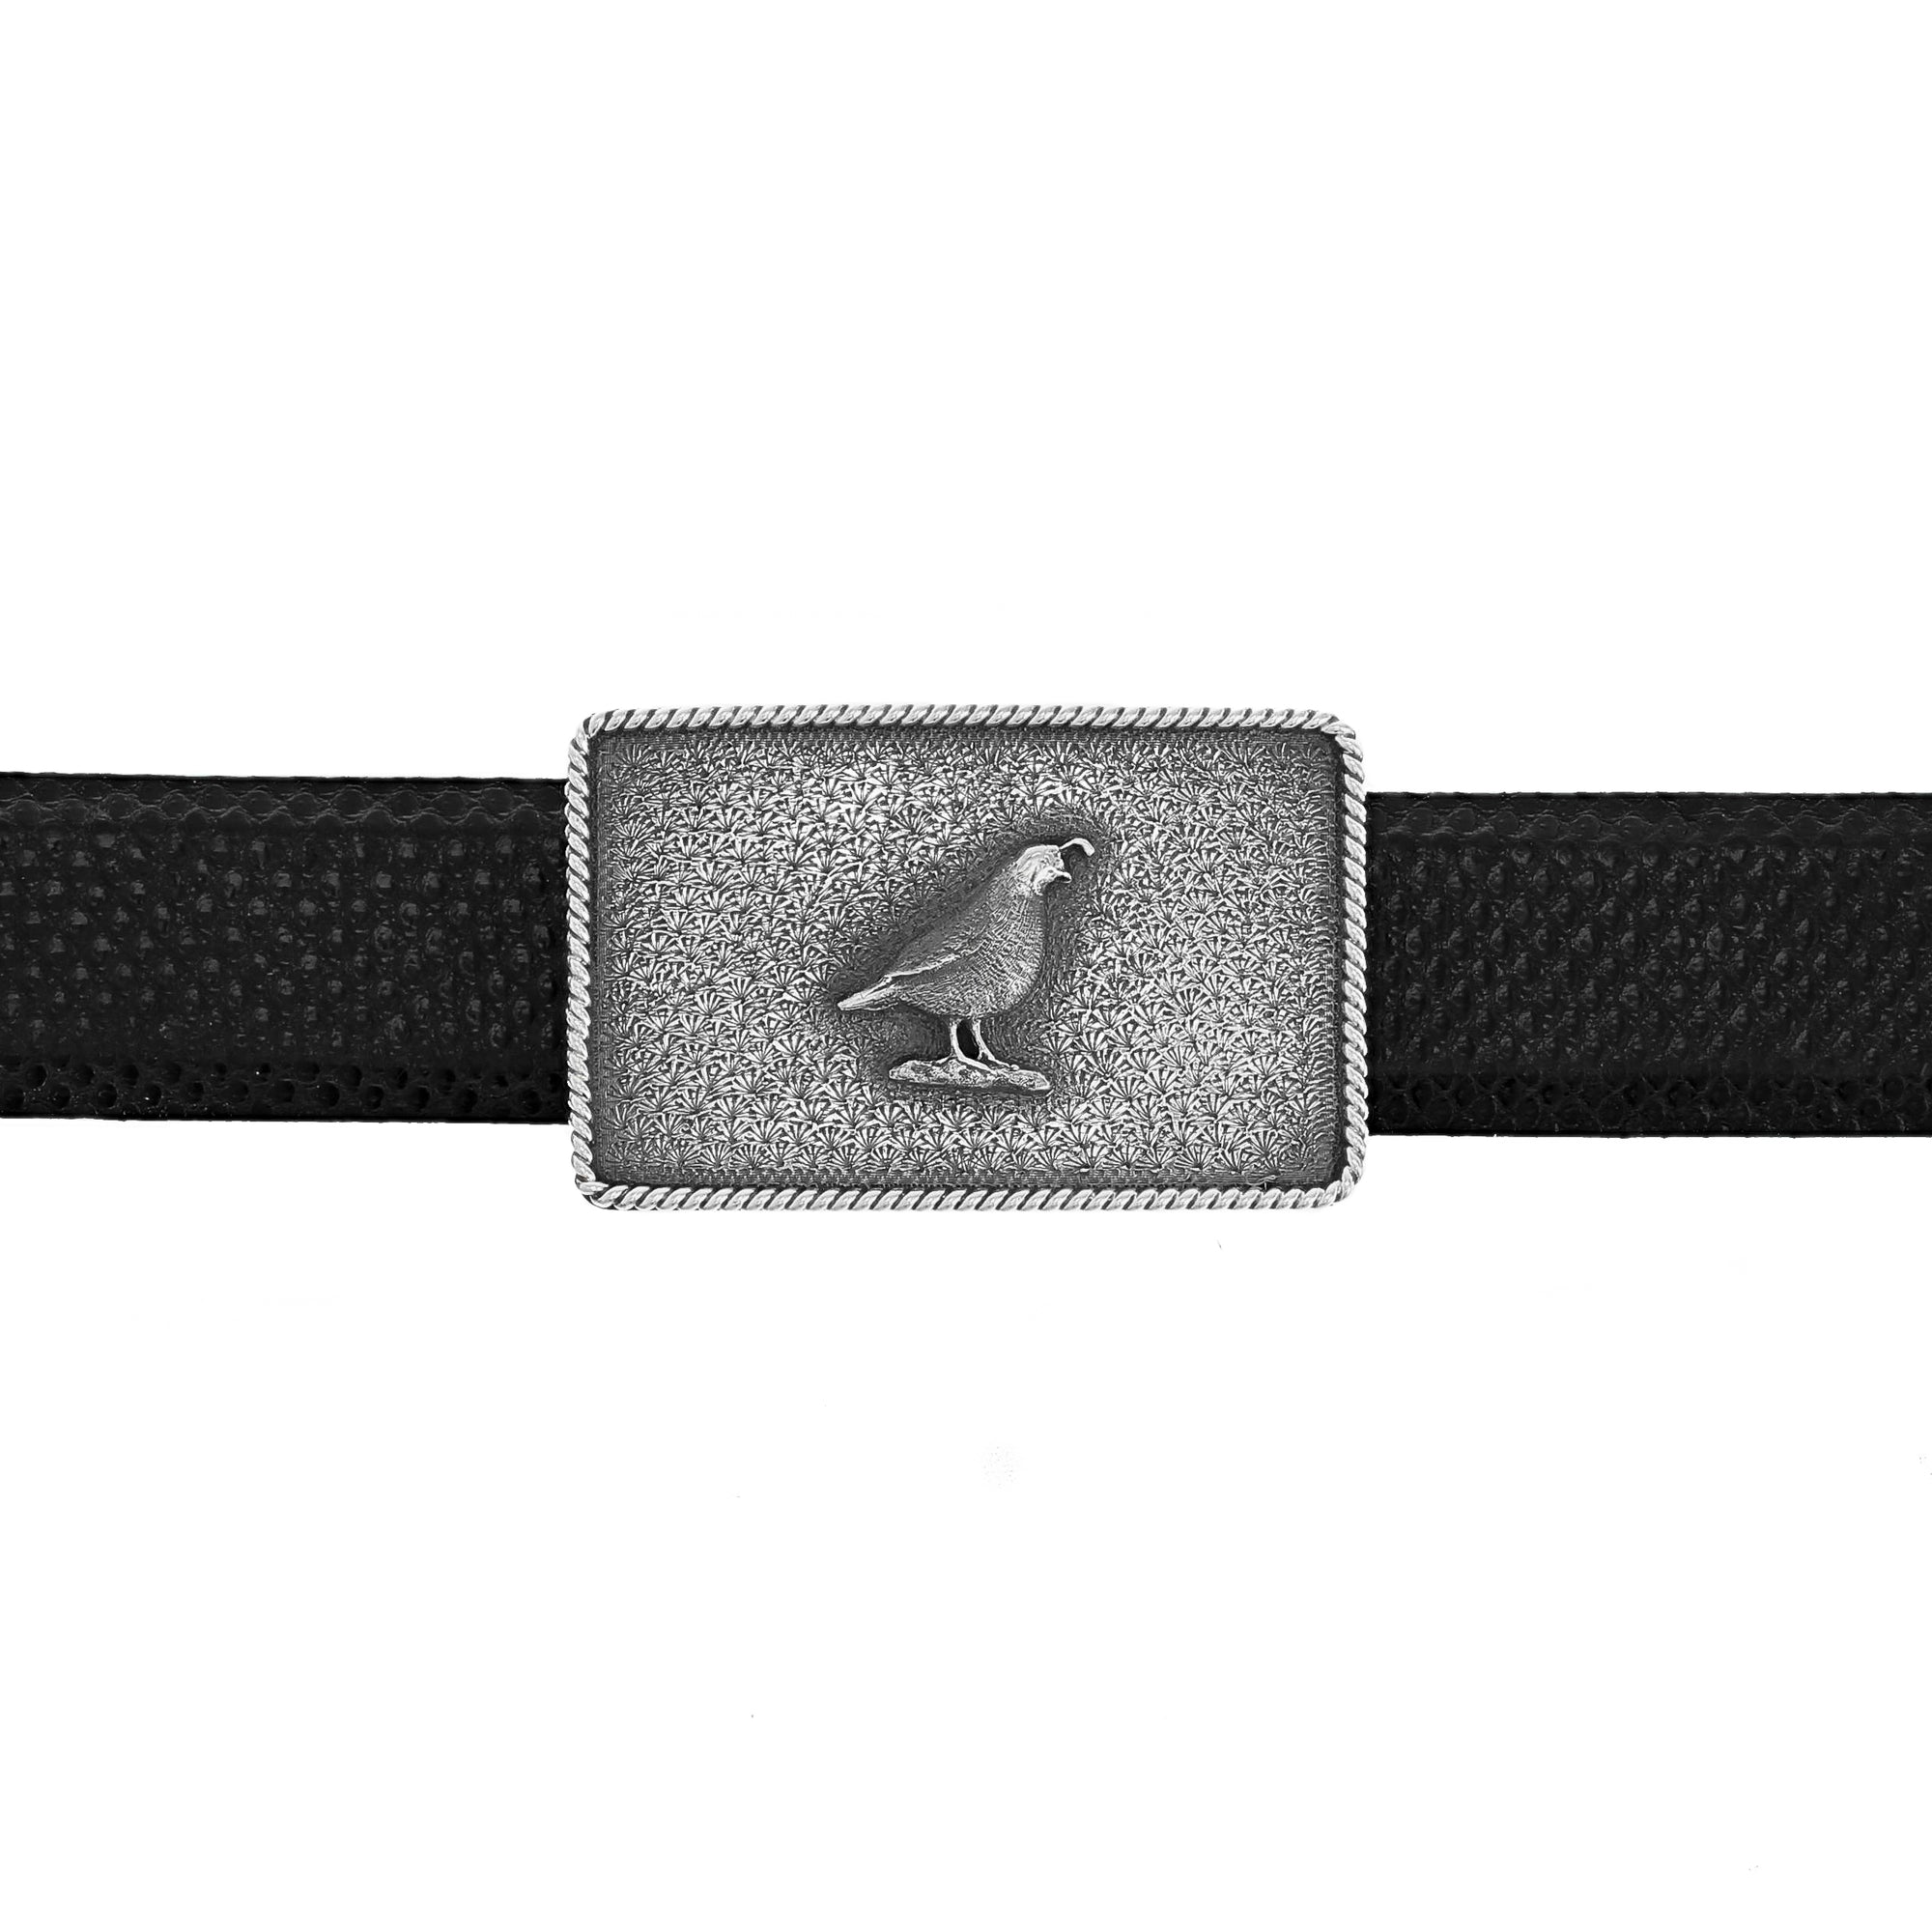 Zavala 1654 California Quail Trophy Buckle